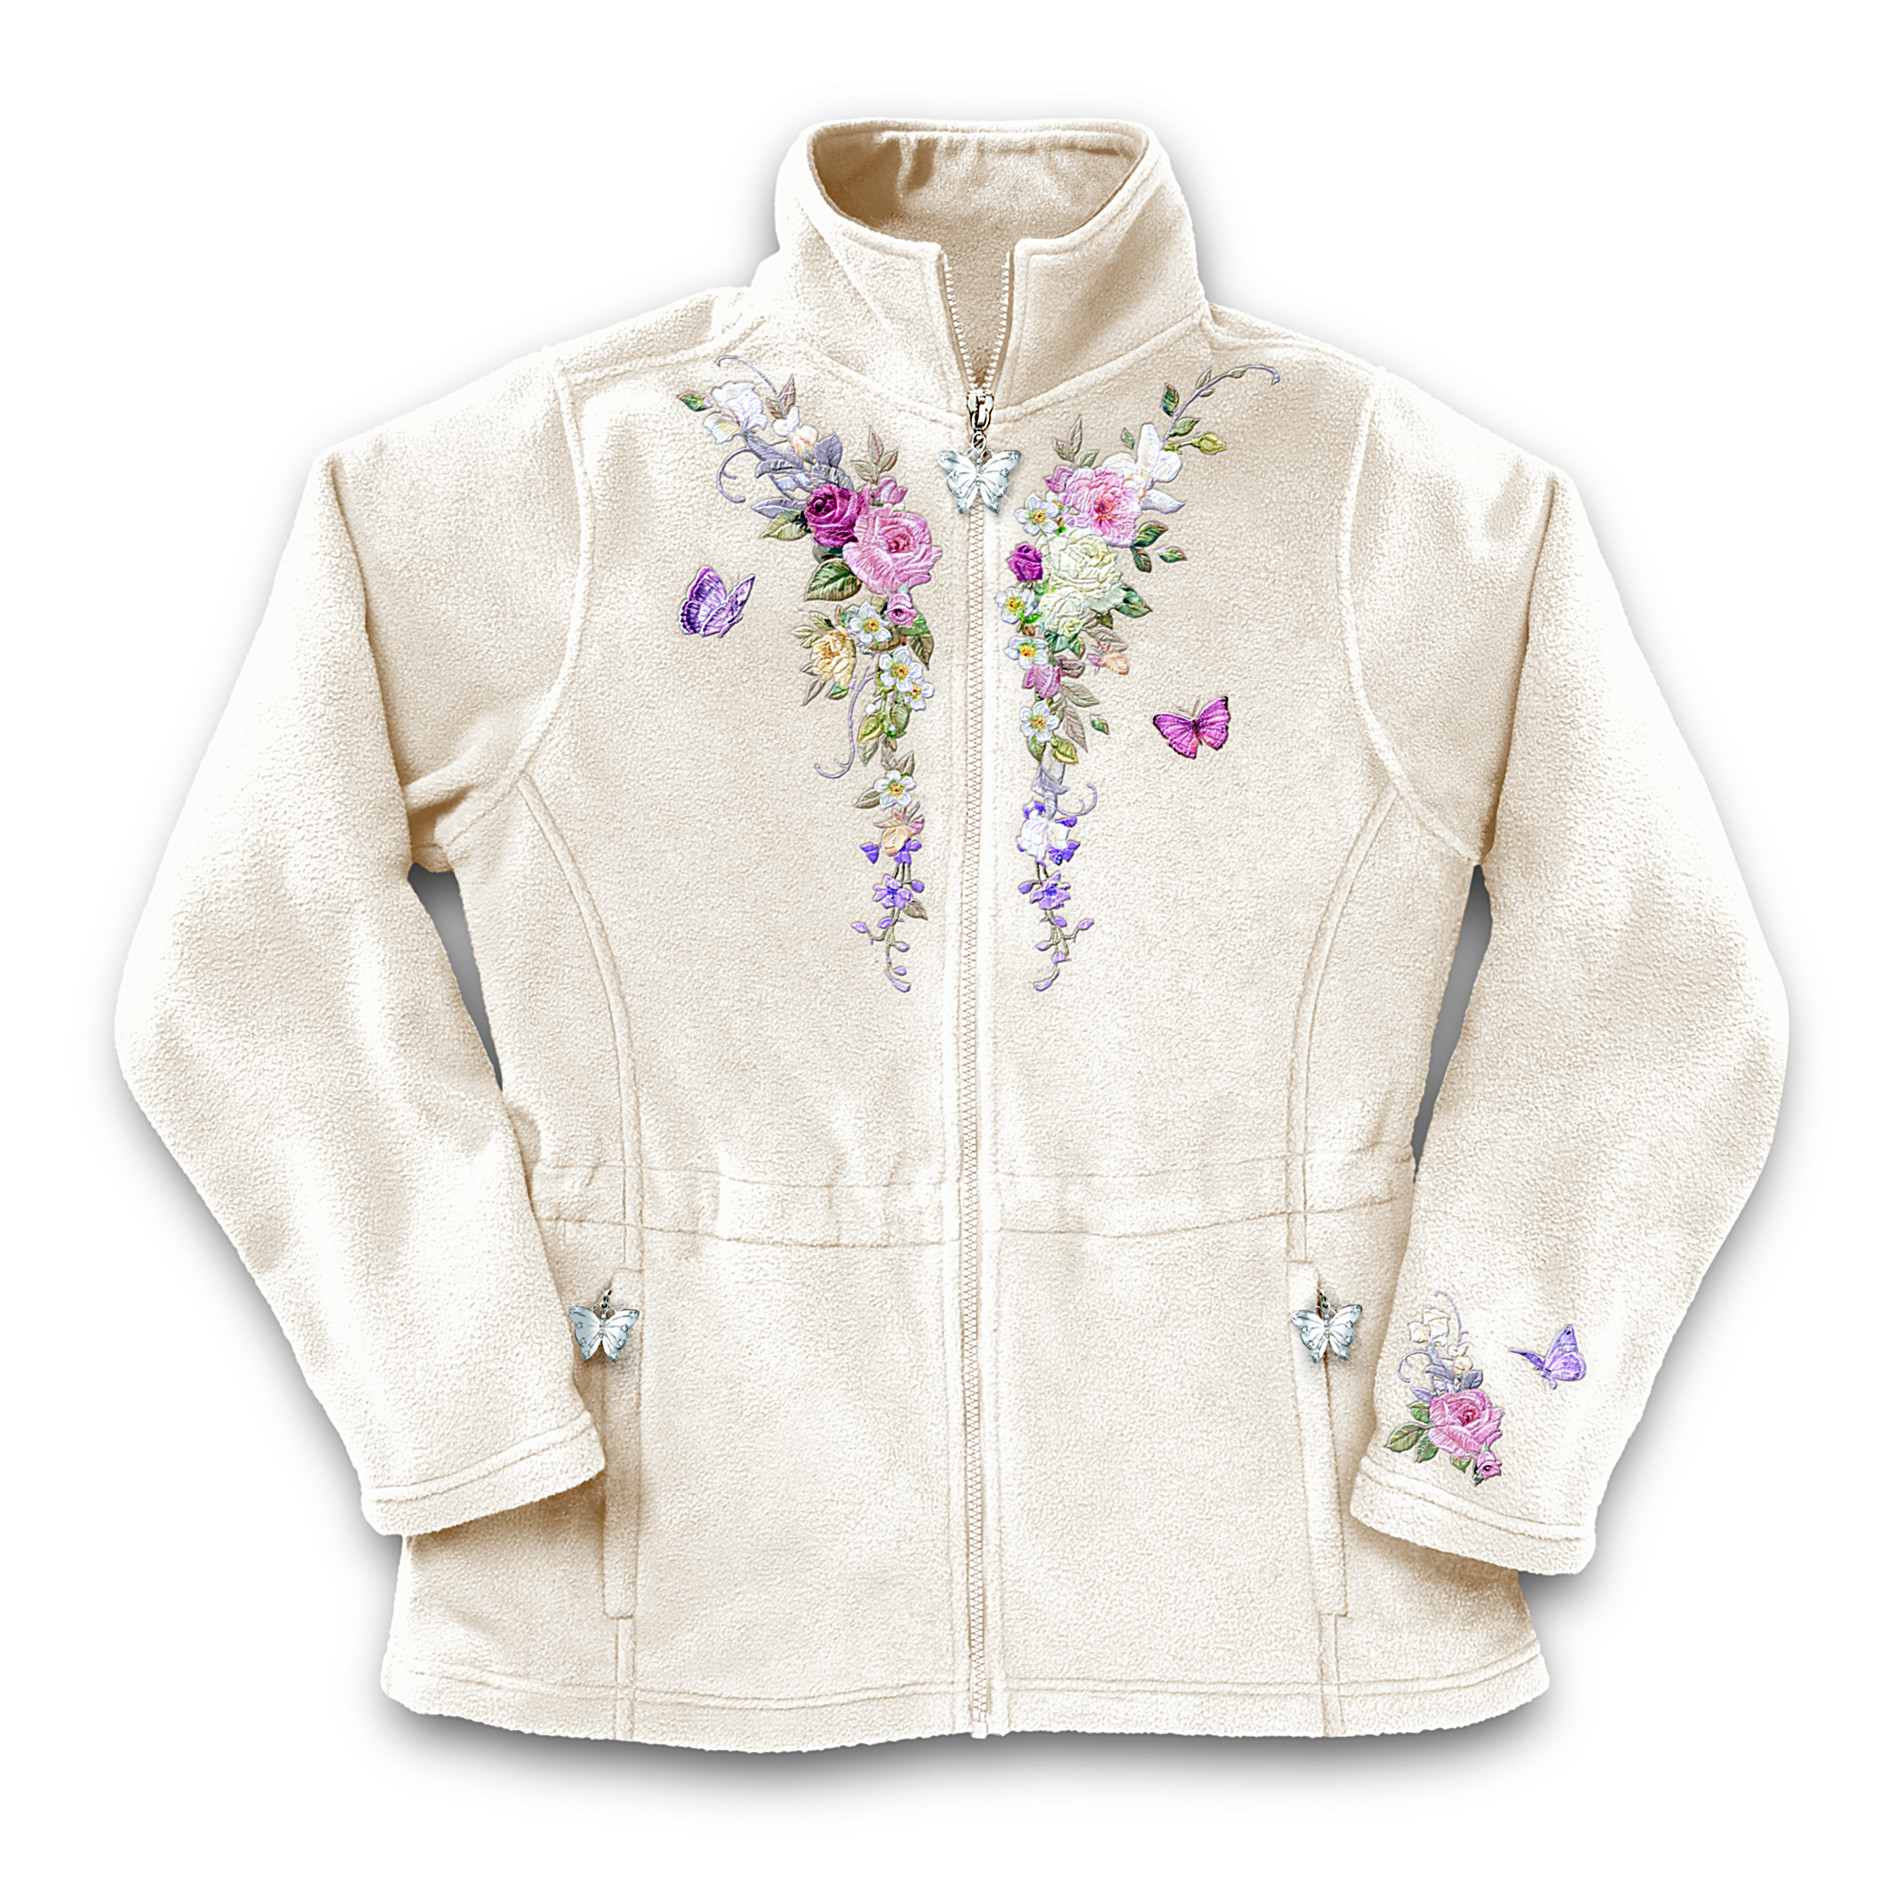 The Bradford Exchange Lena Liu Garden's Perfection Women's Fleece Jacket With Floral Embroidery: Unique Garden Lover Gift at Sears.com